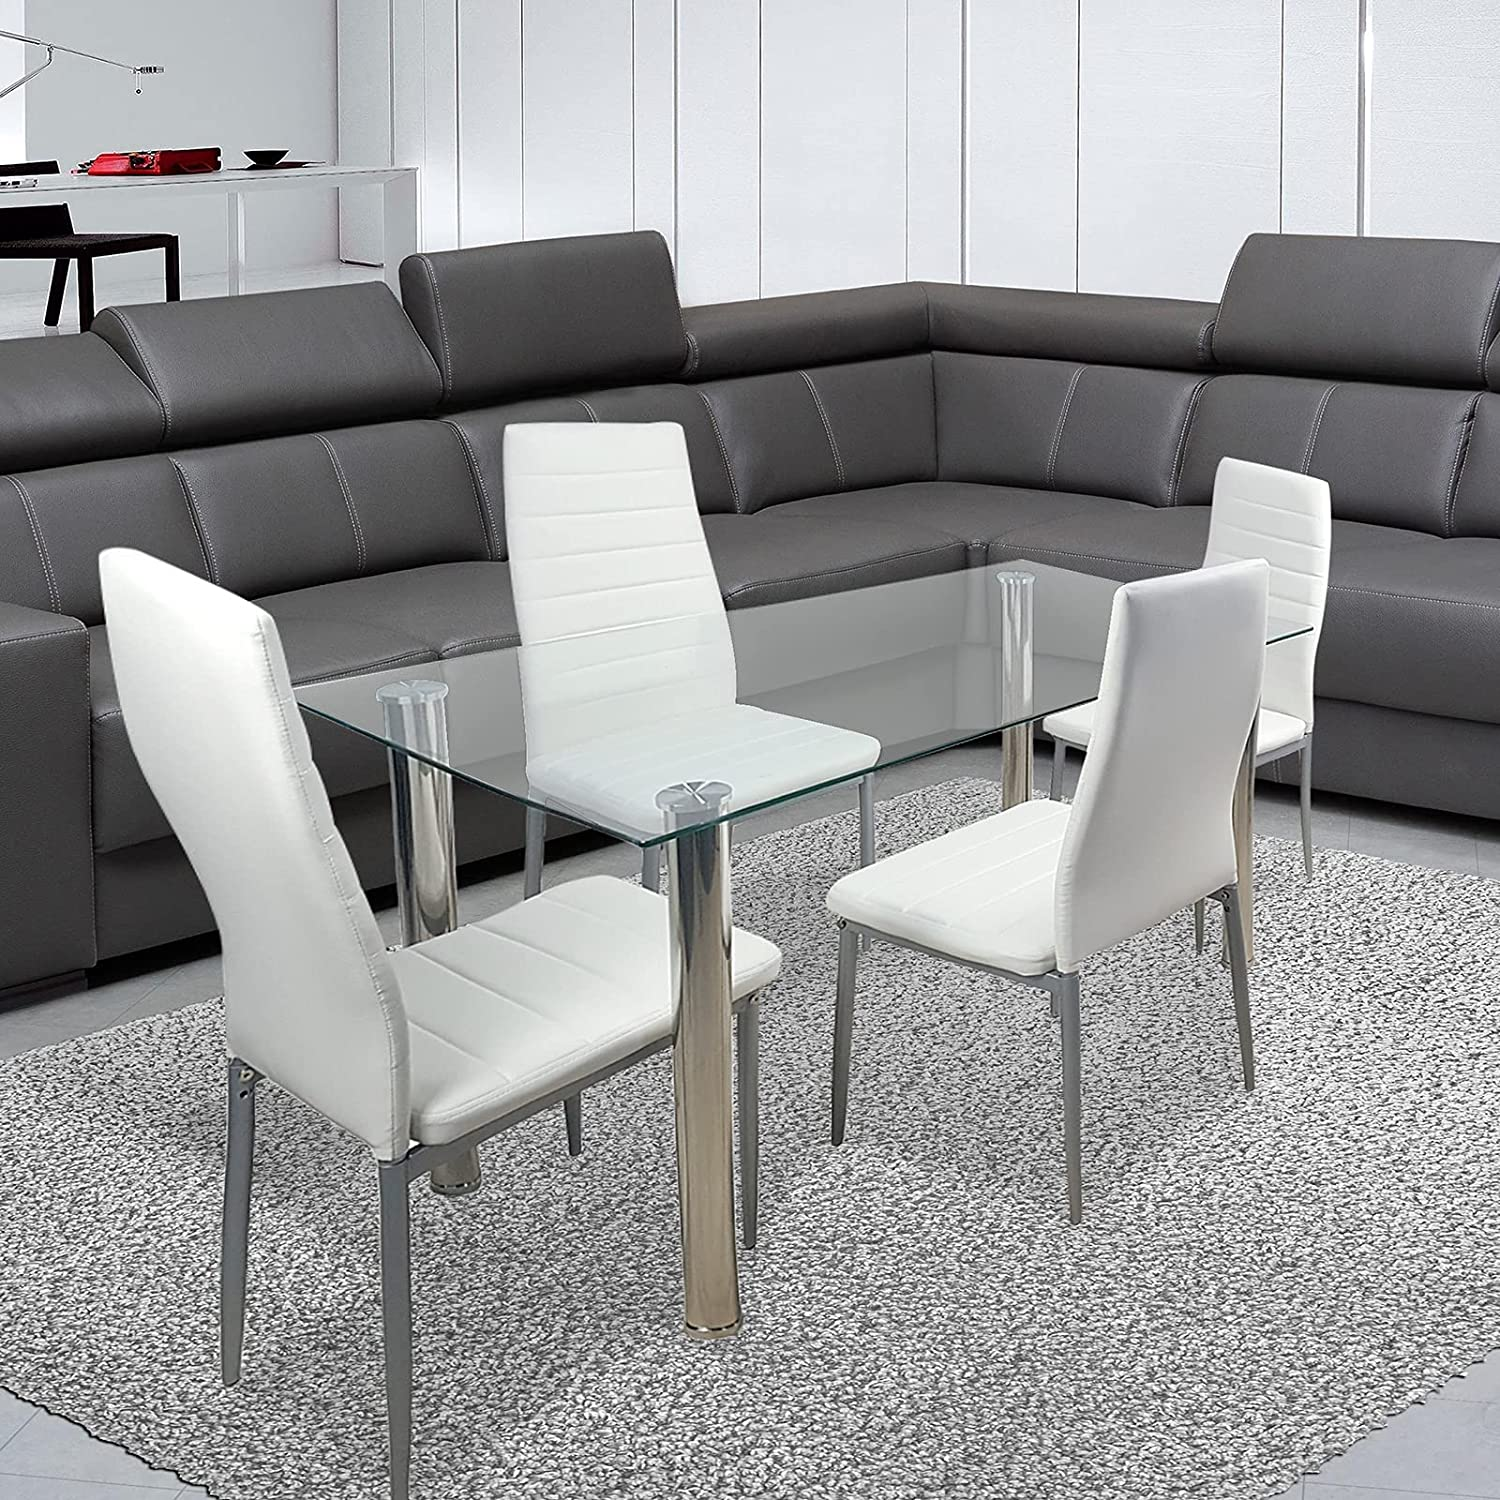 Troopville 5 Piece New sales Recommended Dining Table Glass Transparent Tempered Set